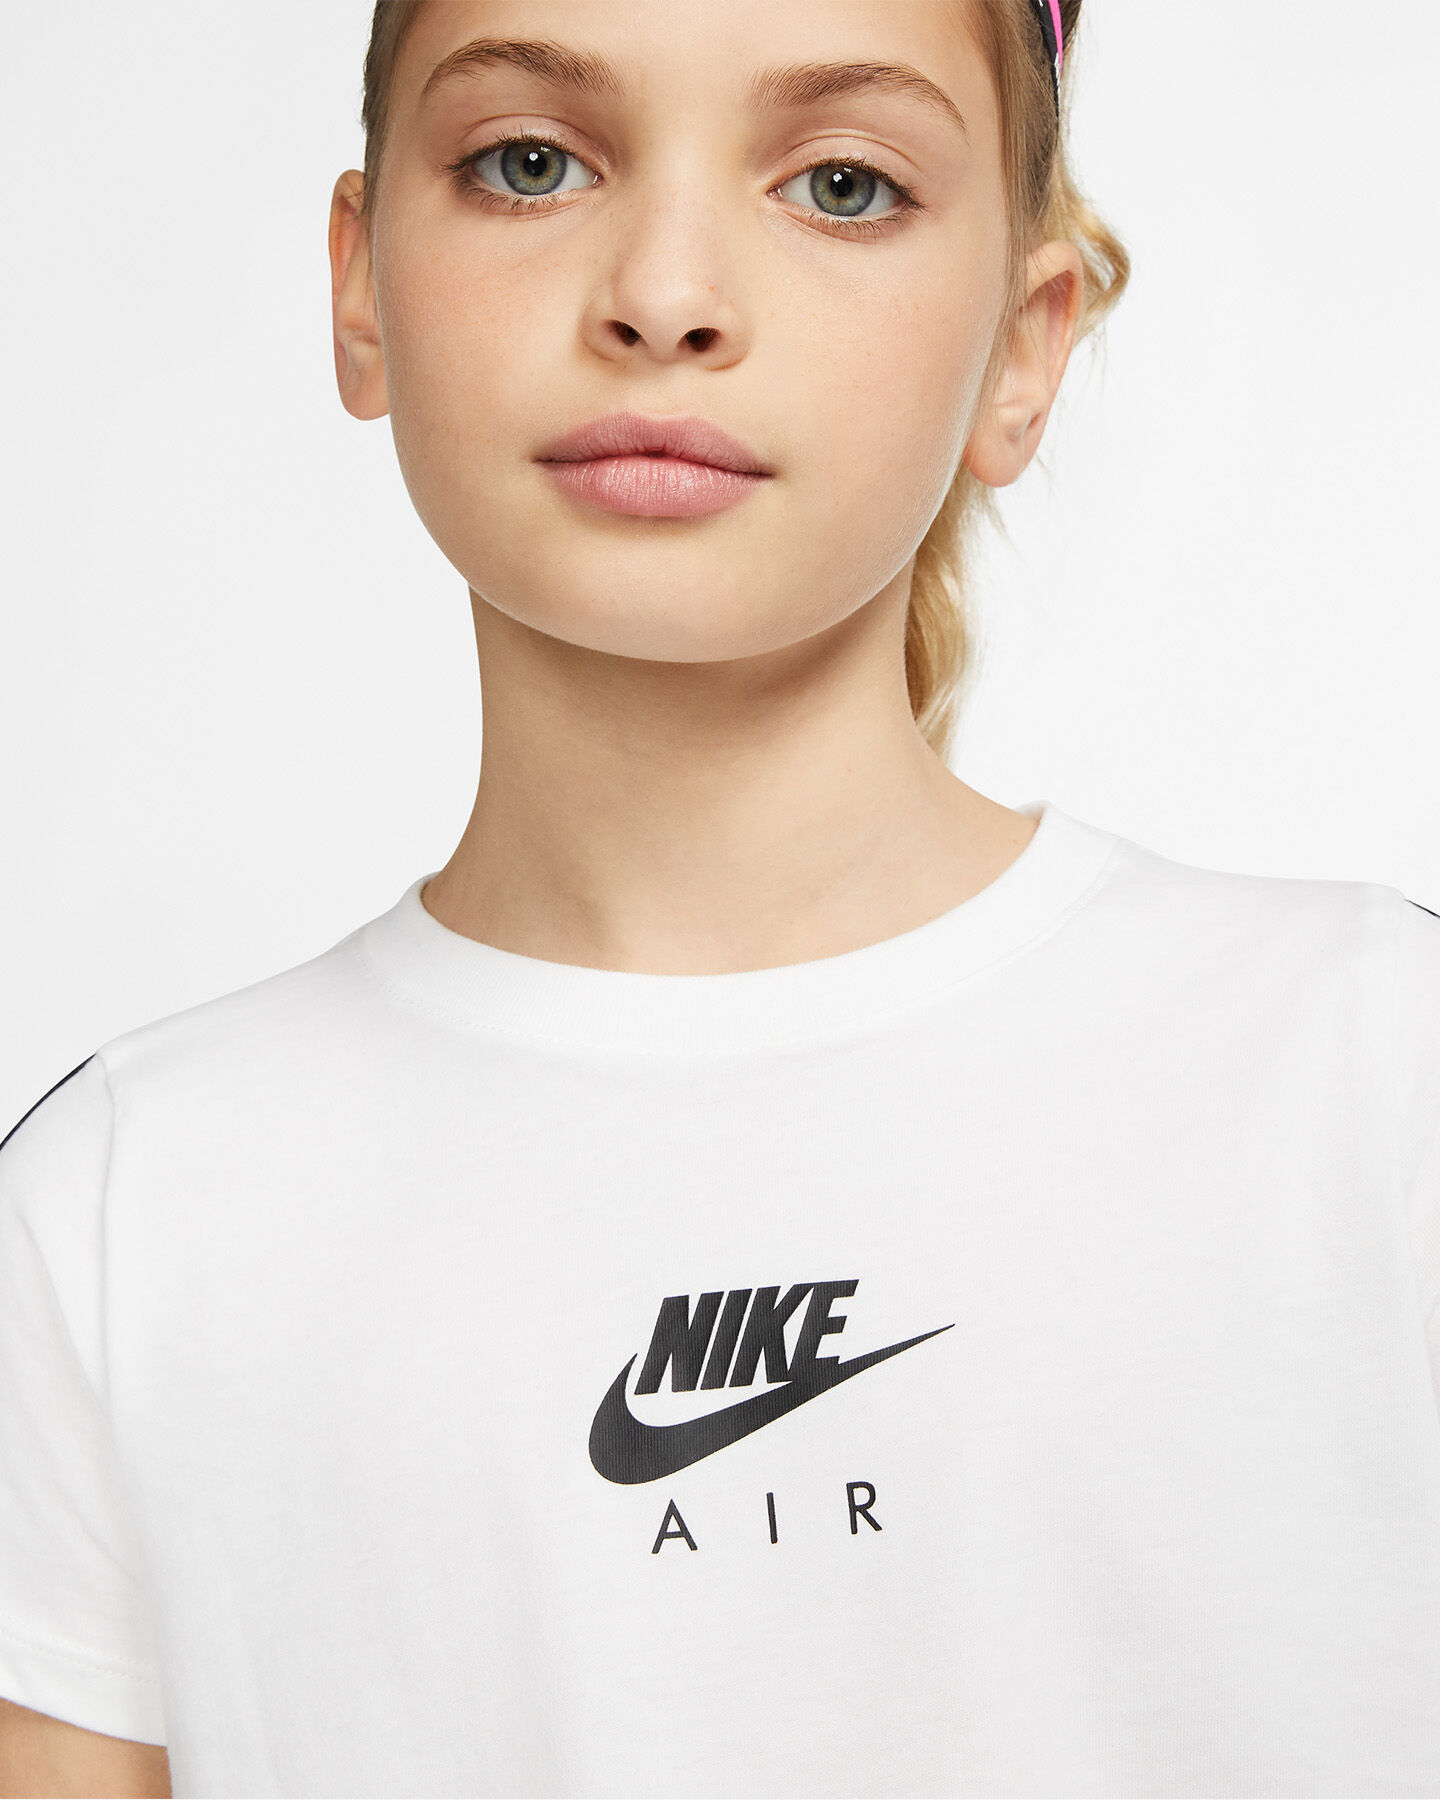 T-Shirt NIKE AIR TAPE JR S5165084 scatto 4